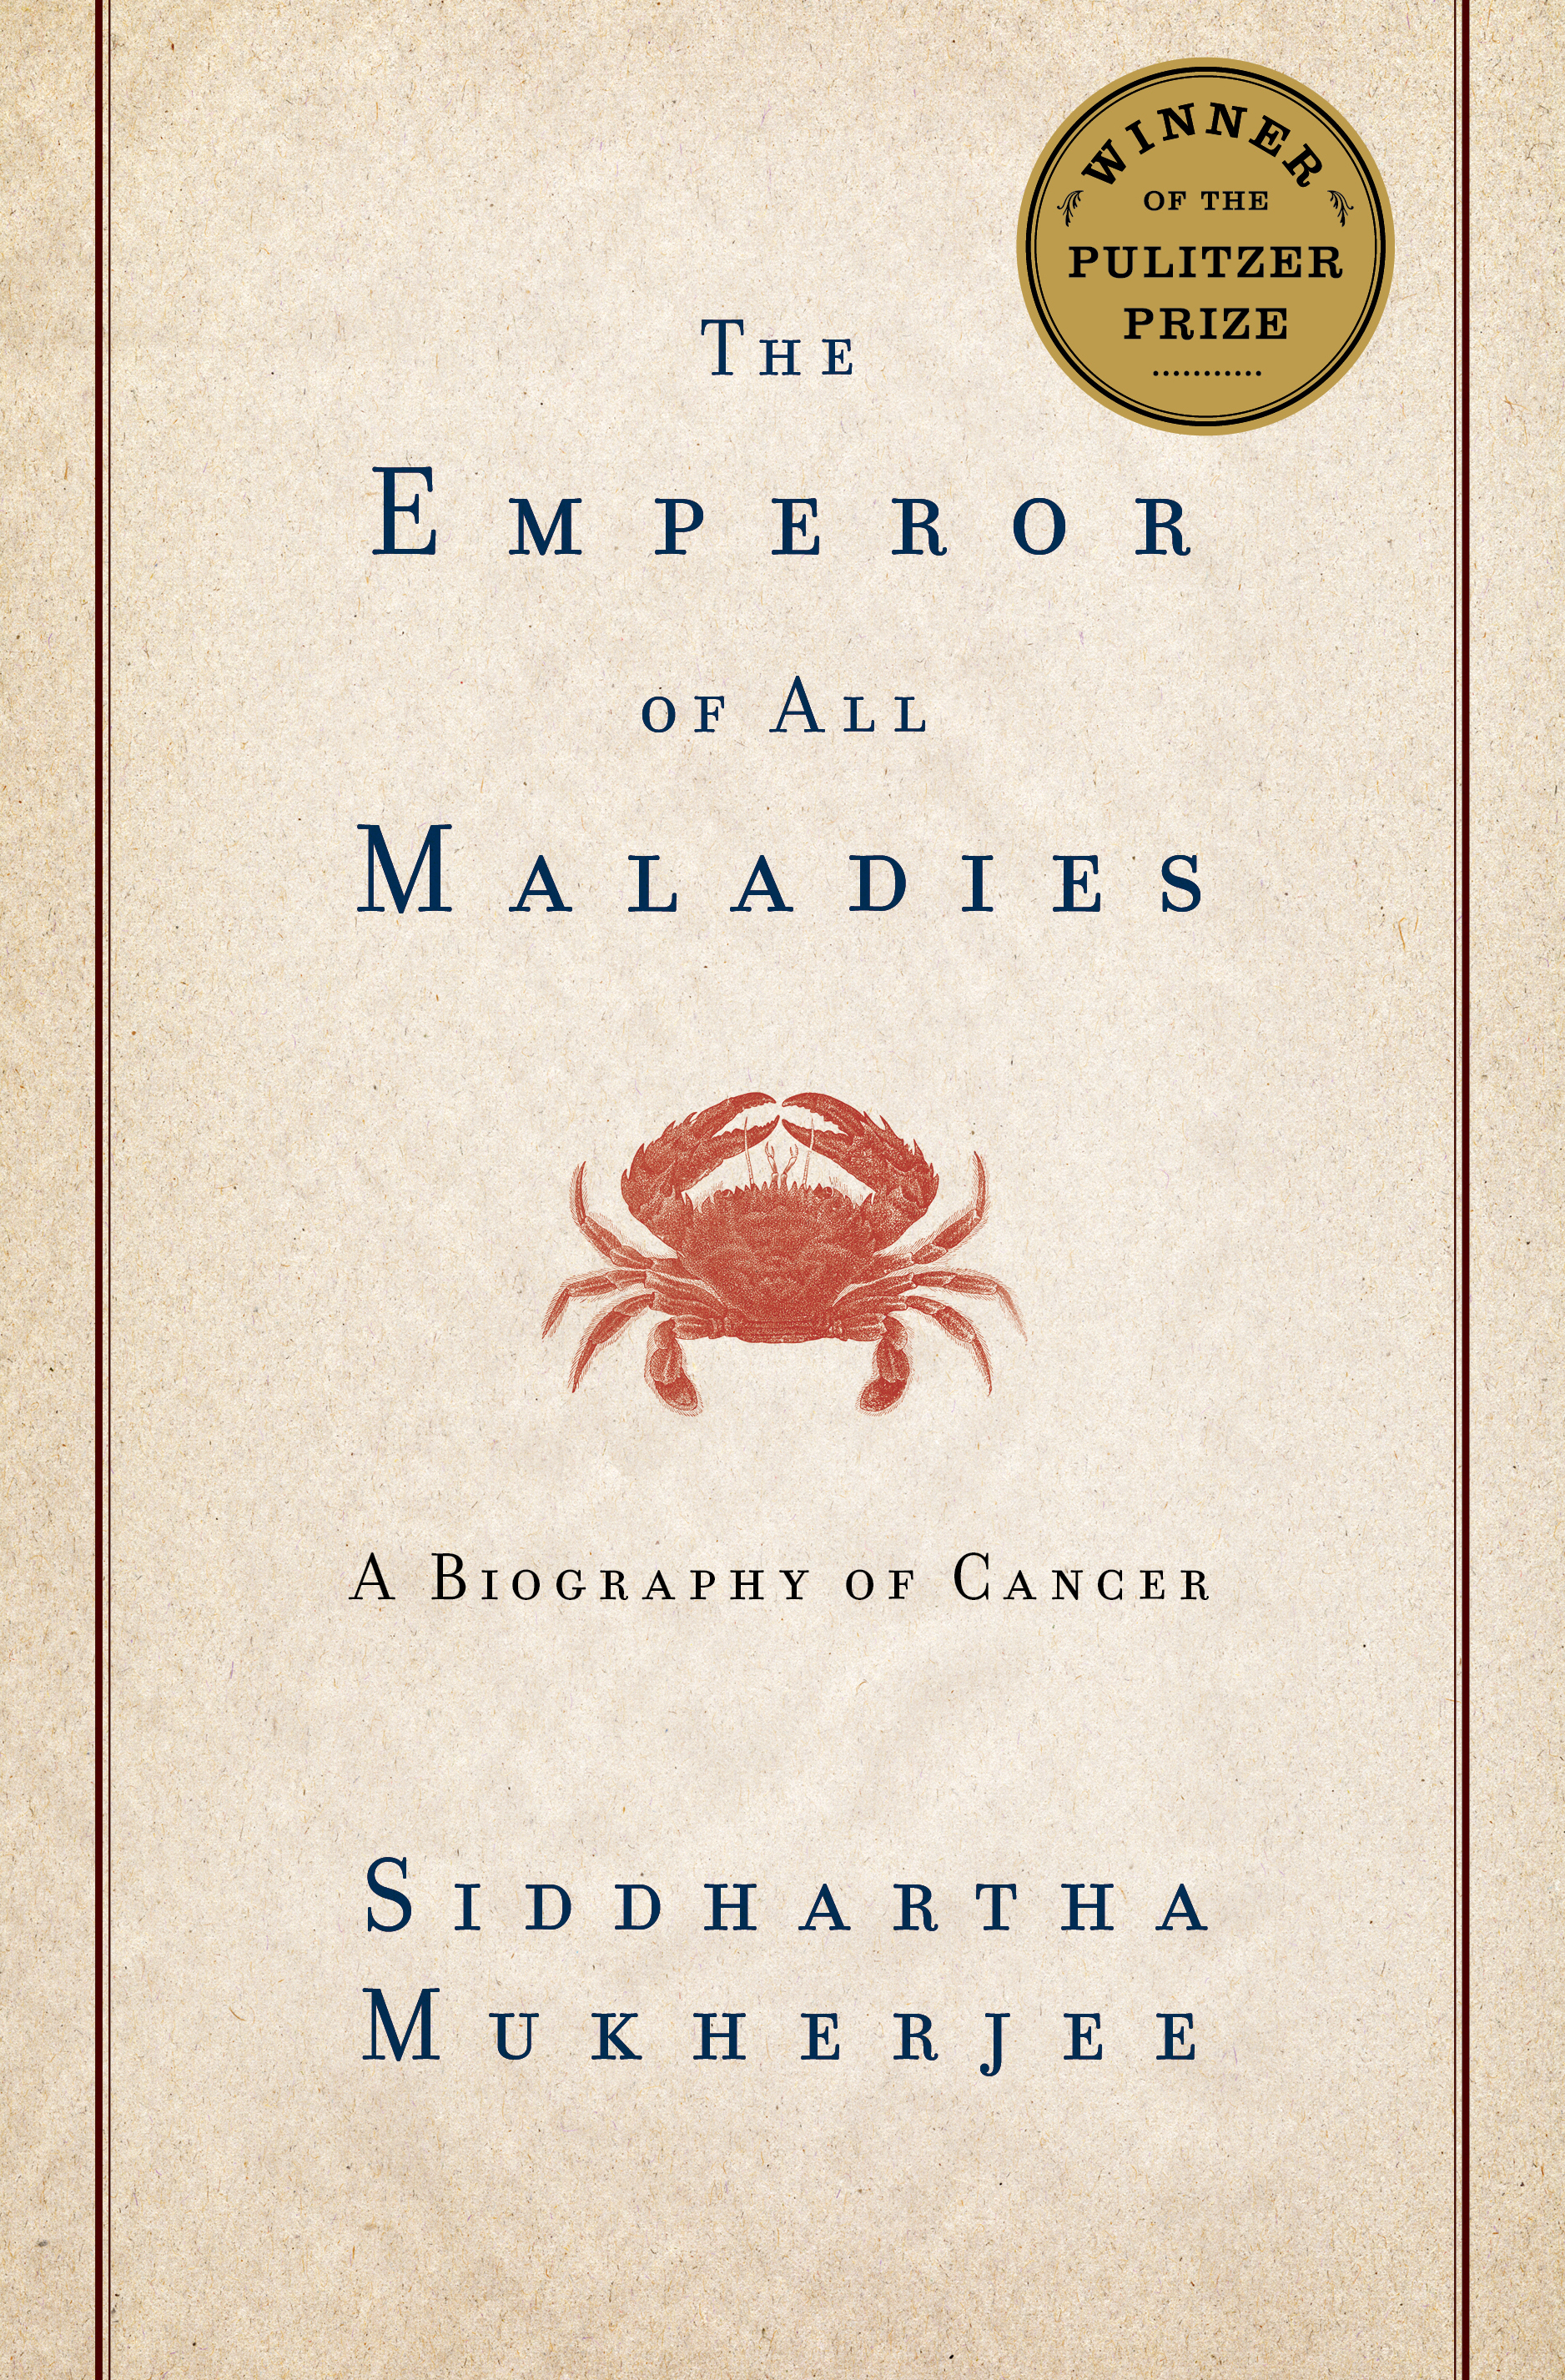 Book Cover Image (jpg): The Emperor Of All Maladies